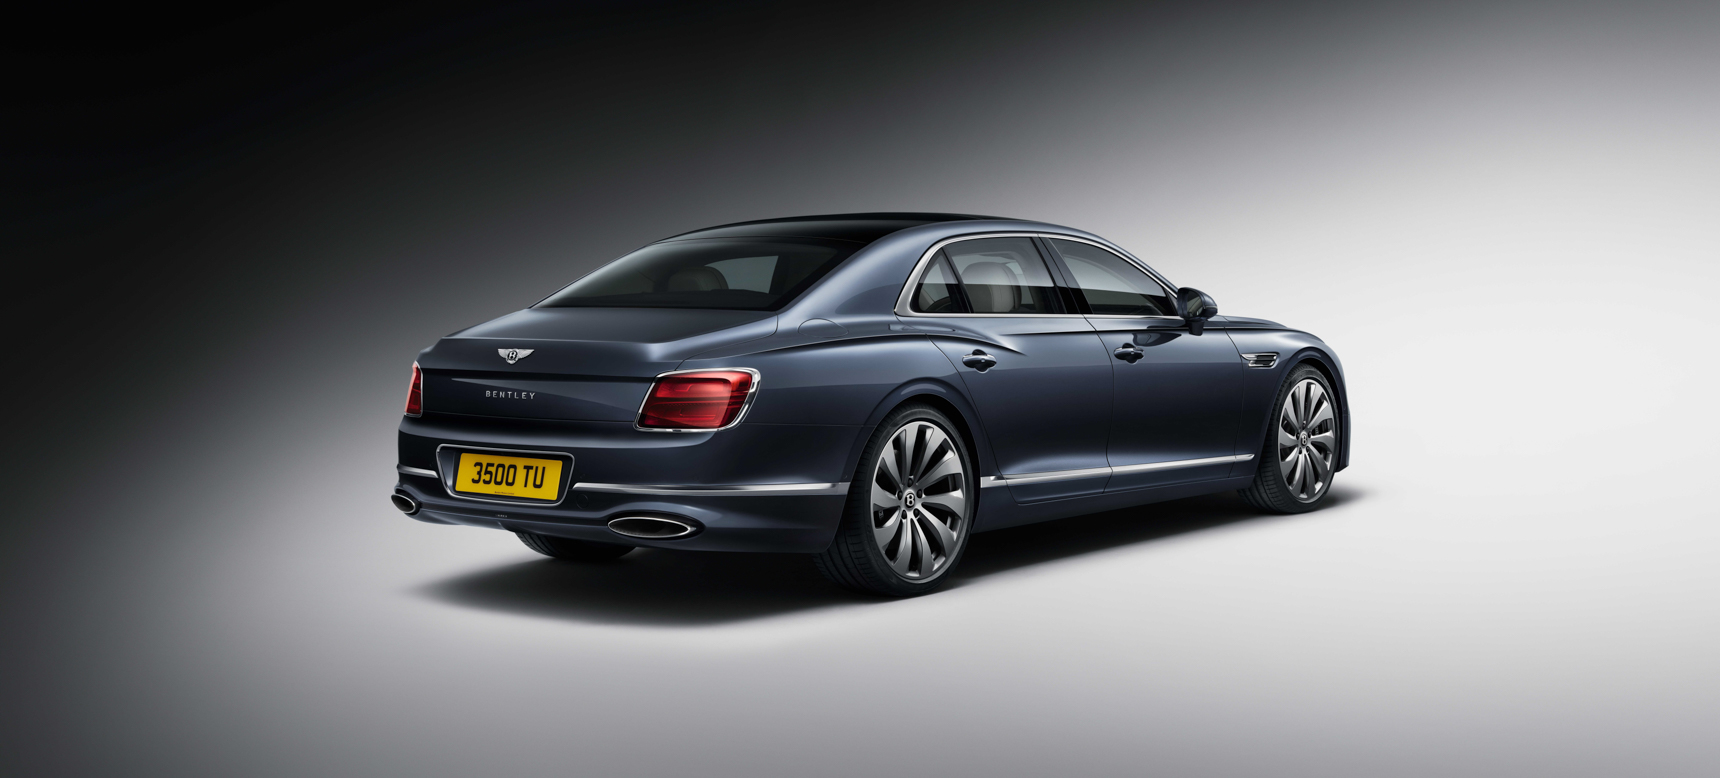 2020 Bentley Flying Spur Bentley Houston